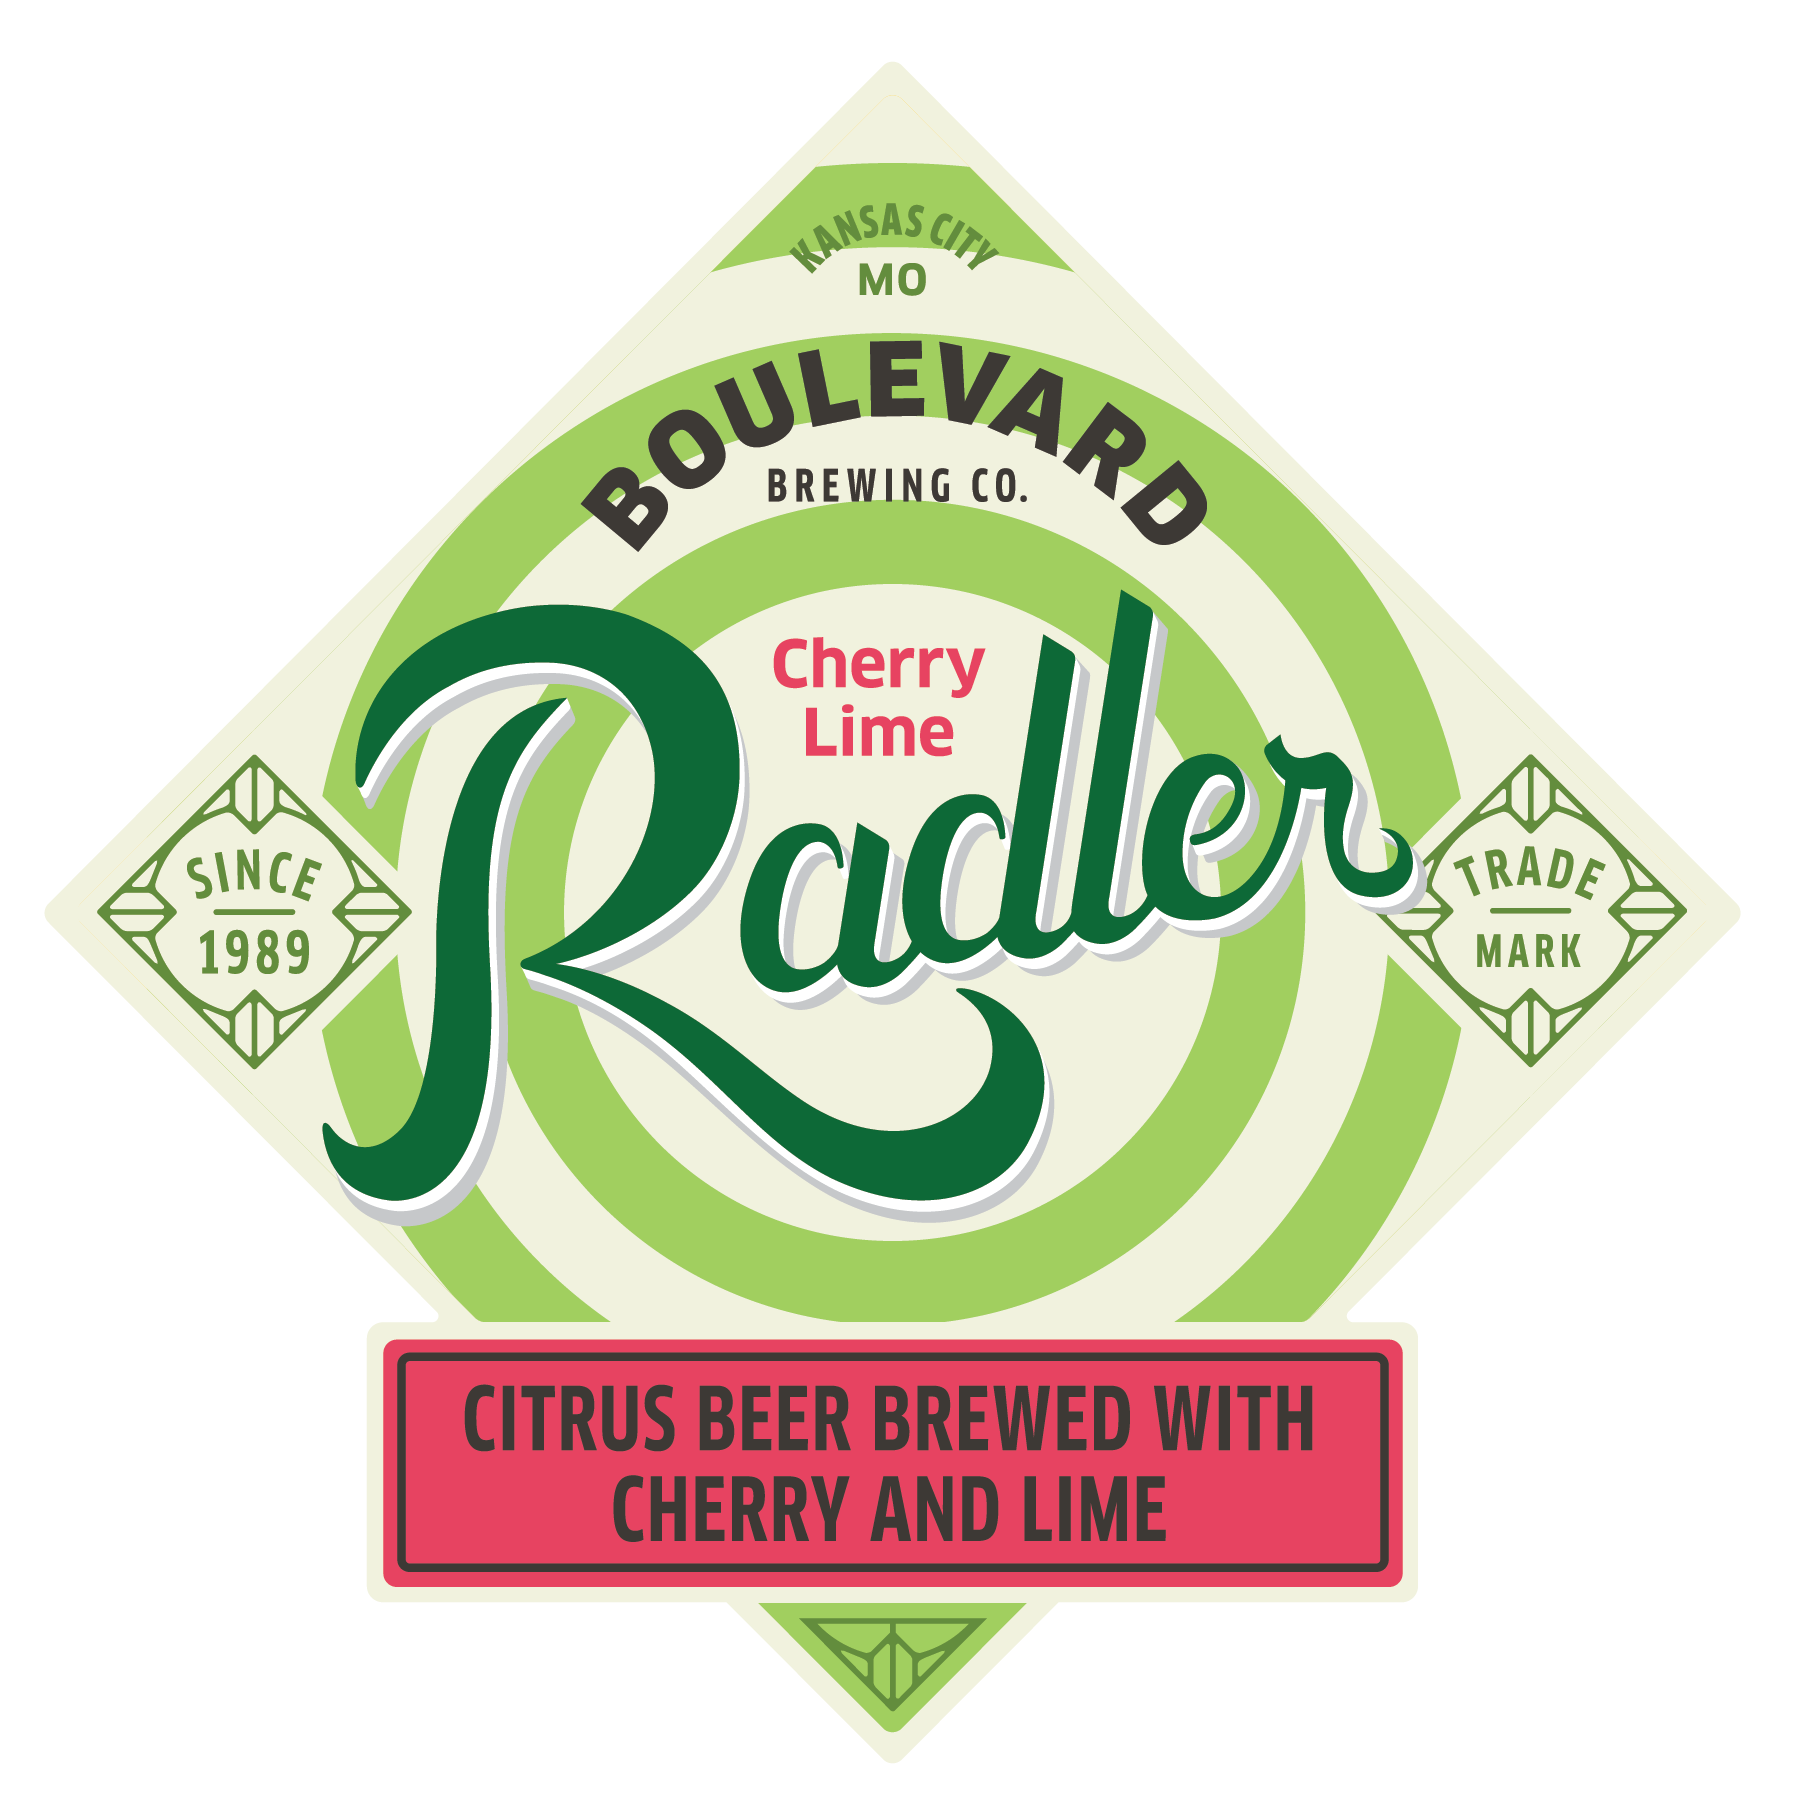 Cherry-Lime-Radler